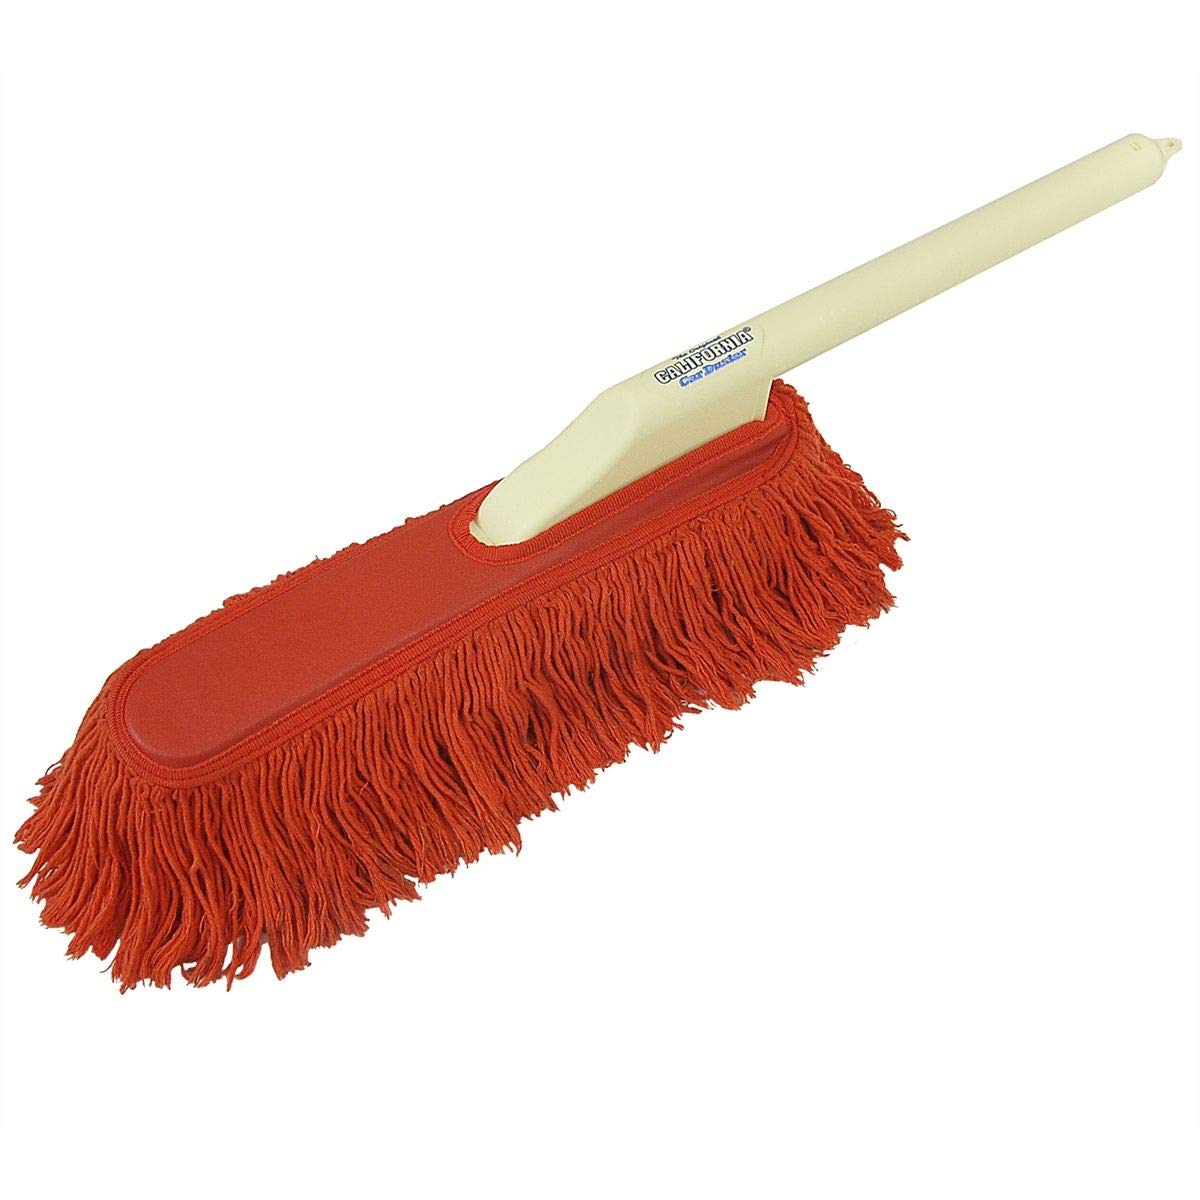 The Original California Car Duster Large 62443 for Cars and Home Wax Treated by California Car Duster